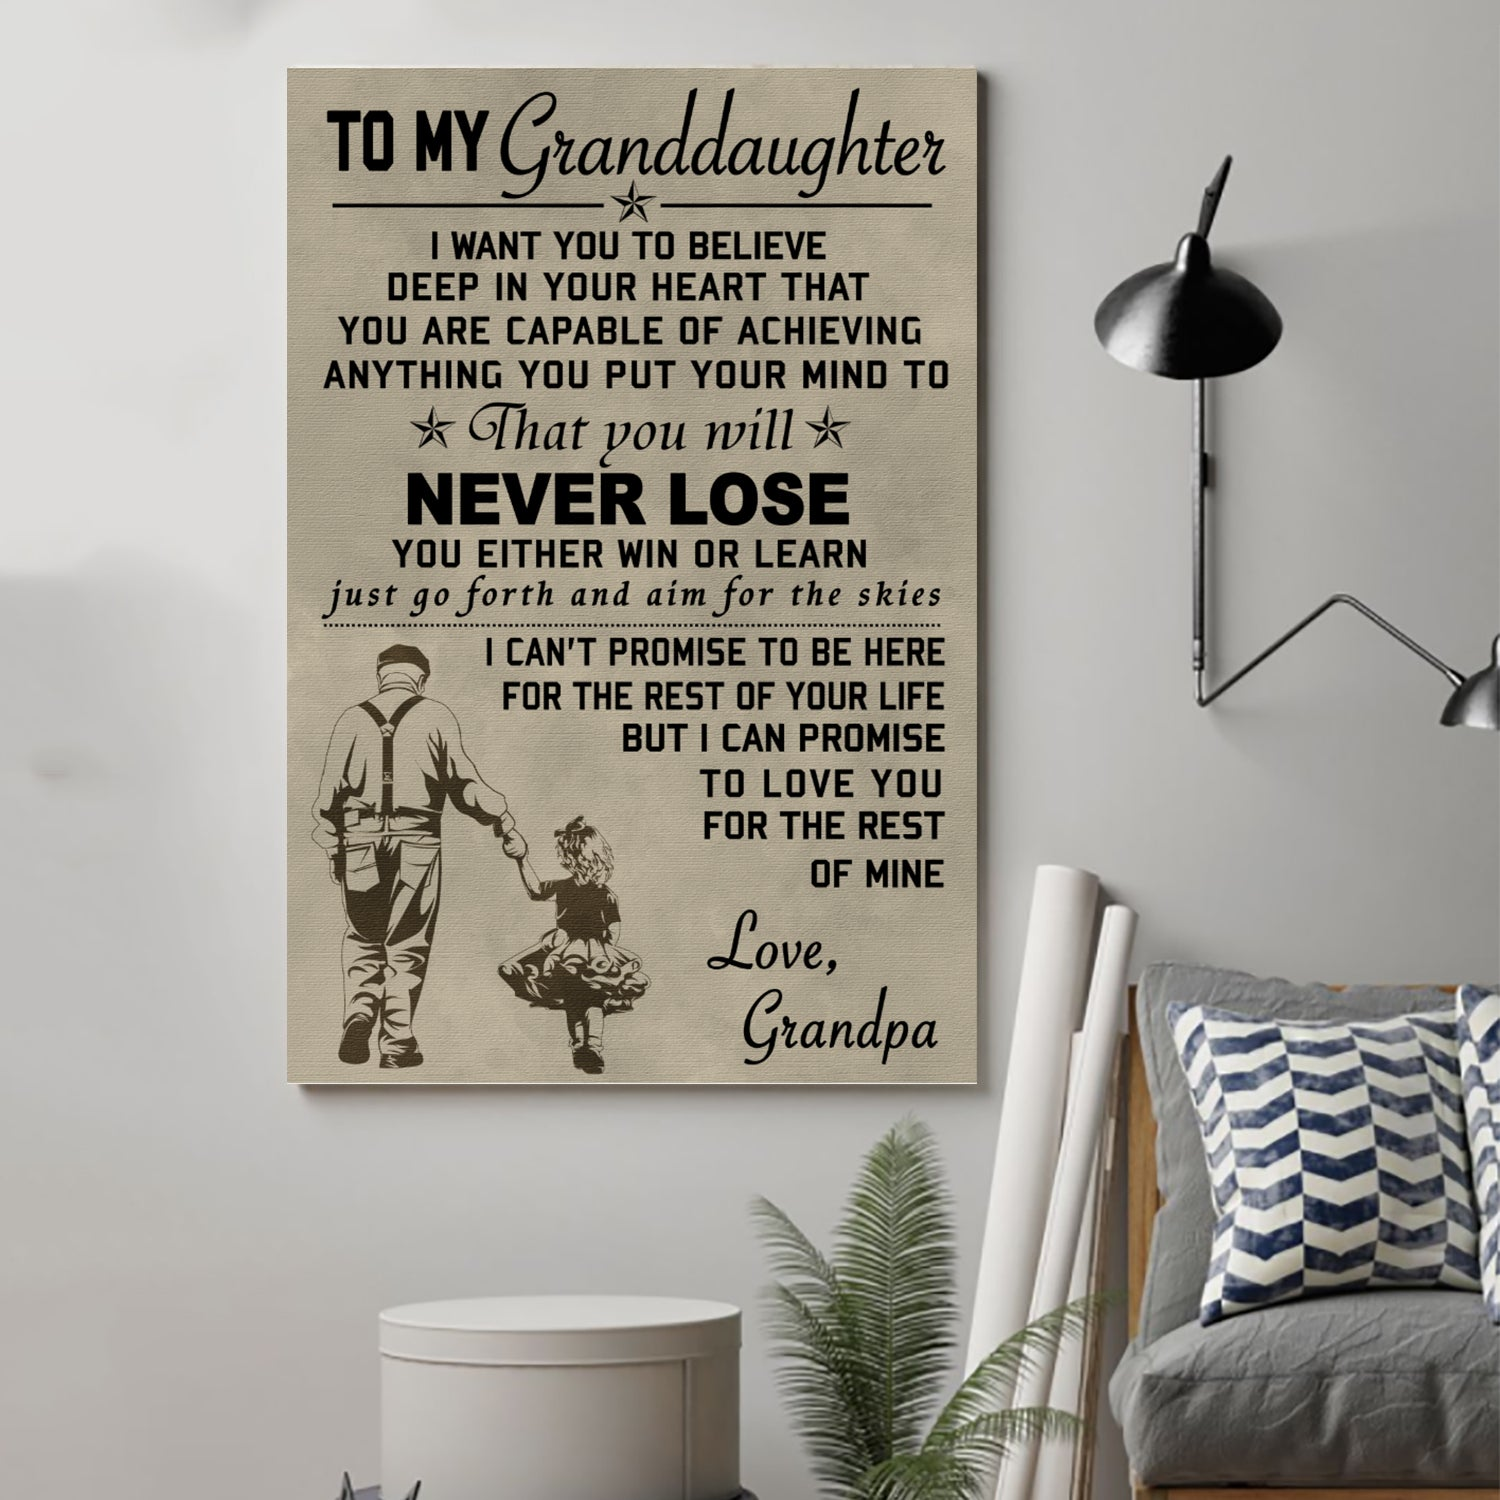 (cv172) family poster - to my granddaughter